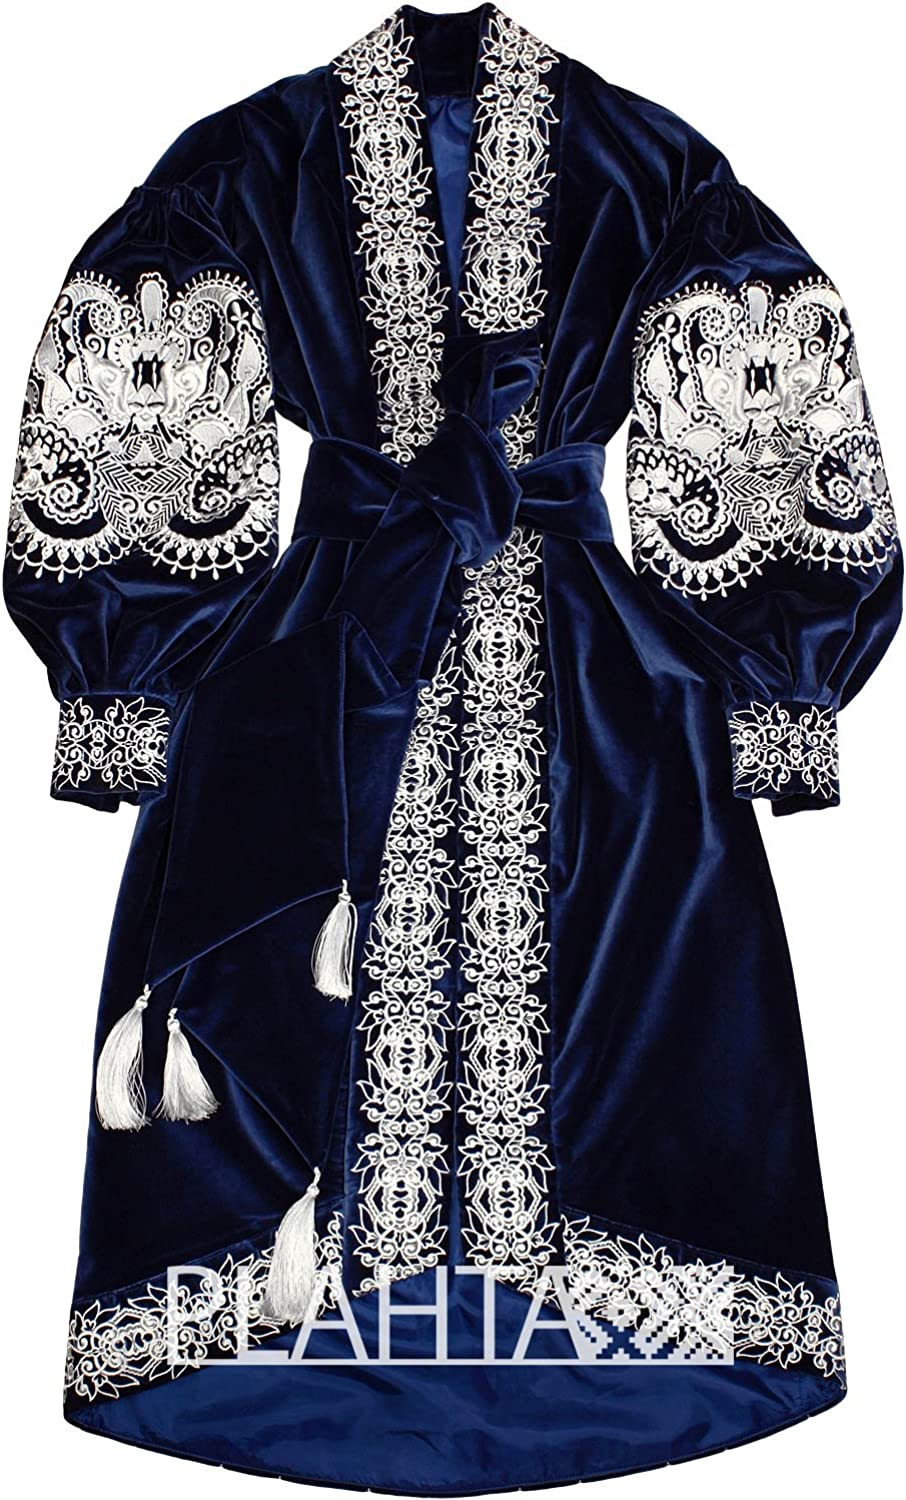 Boho style velvet dress with embroidery